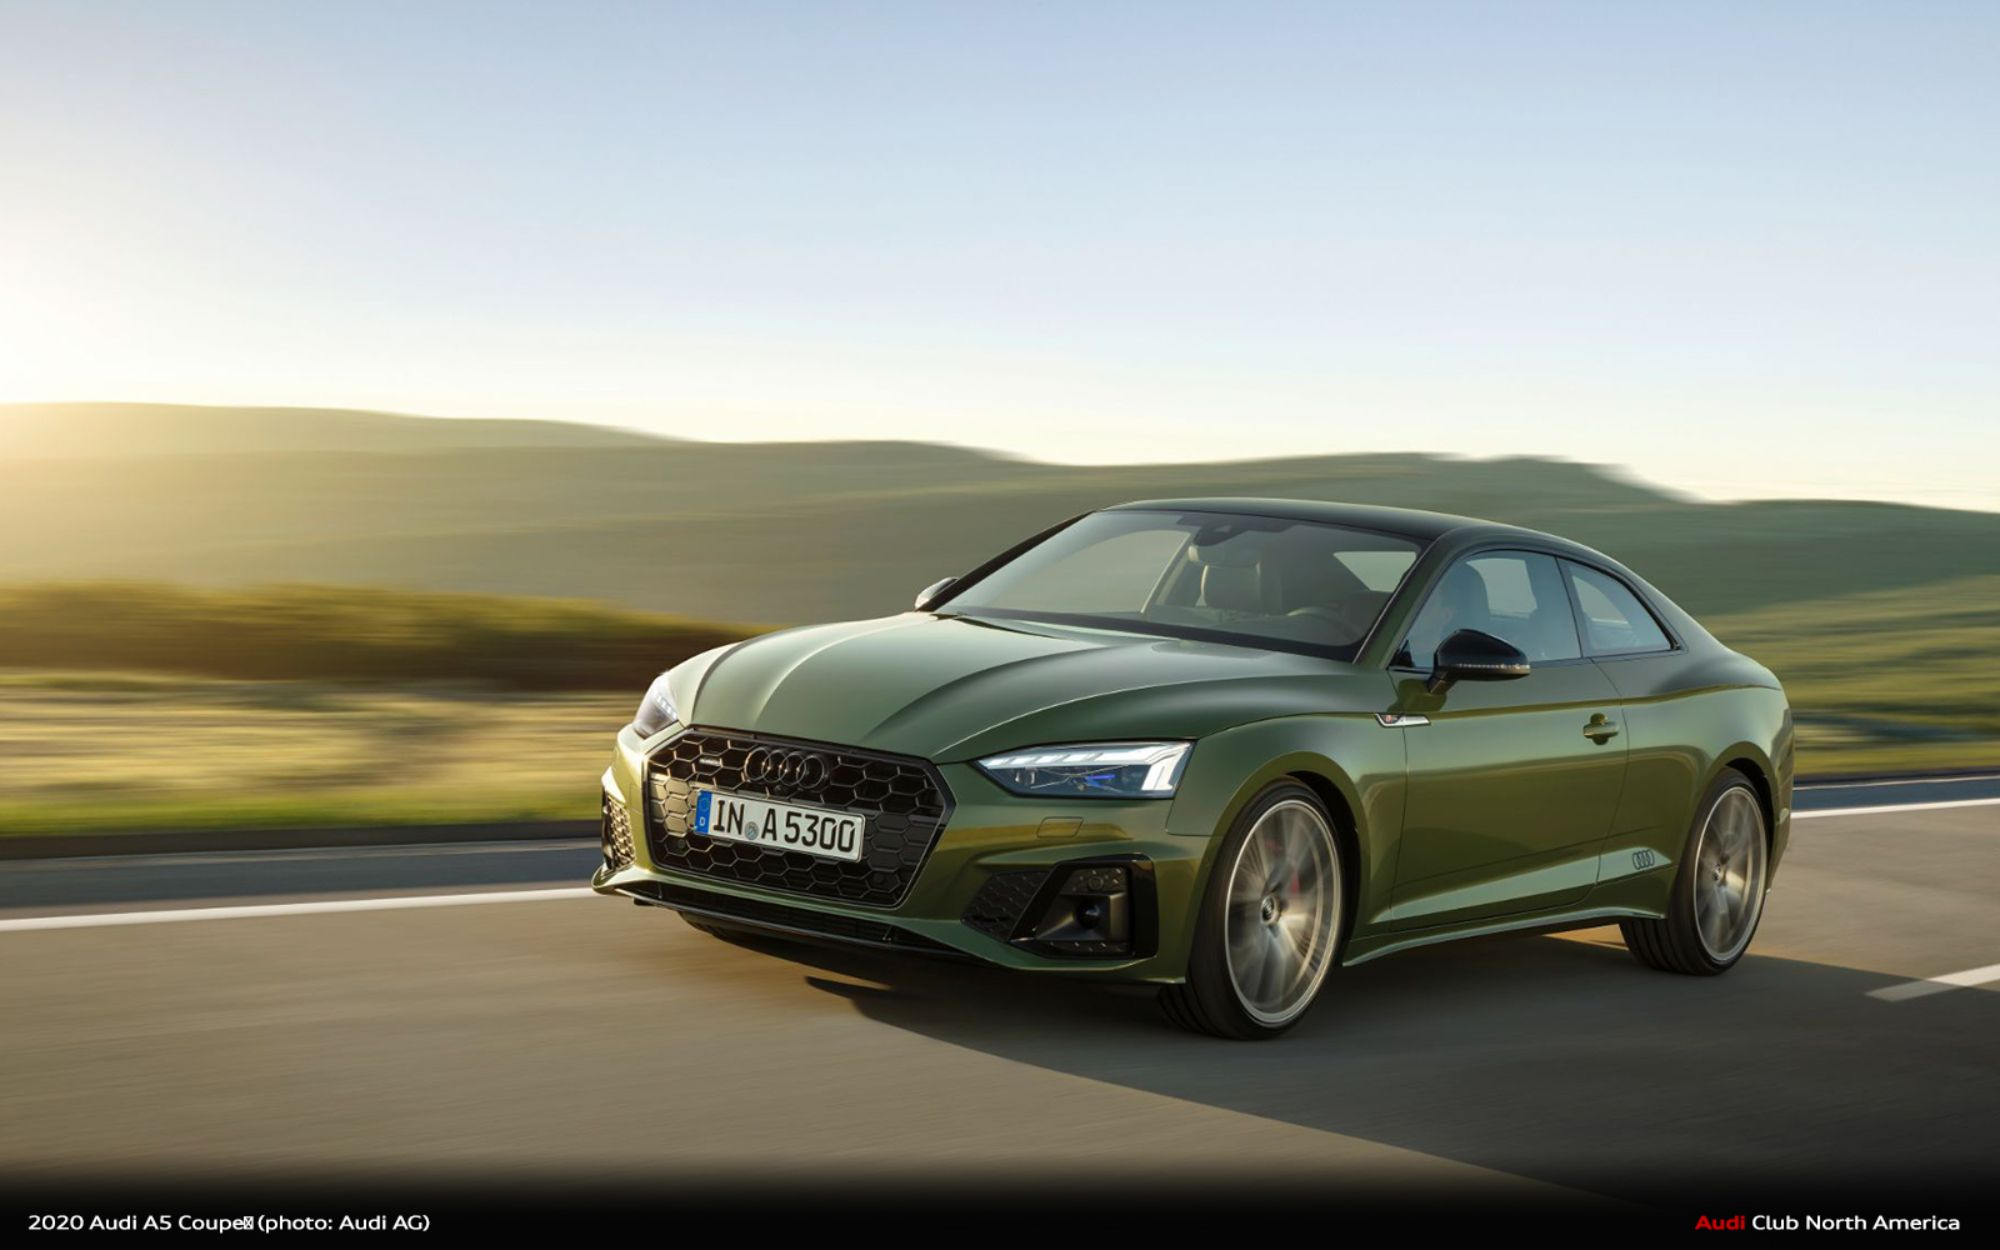 2020 Audi A5 Brings Refreshed Design And Innovative Technology To Model Line